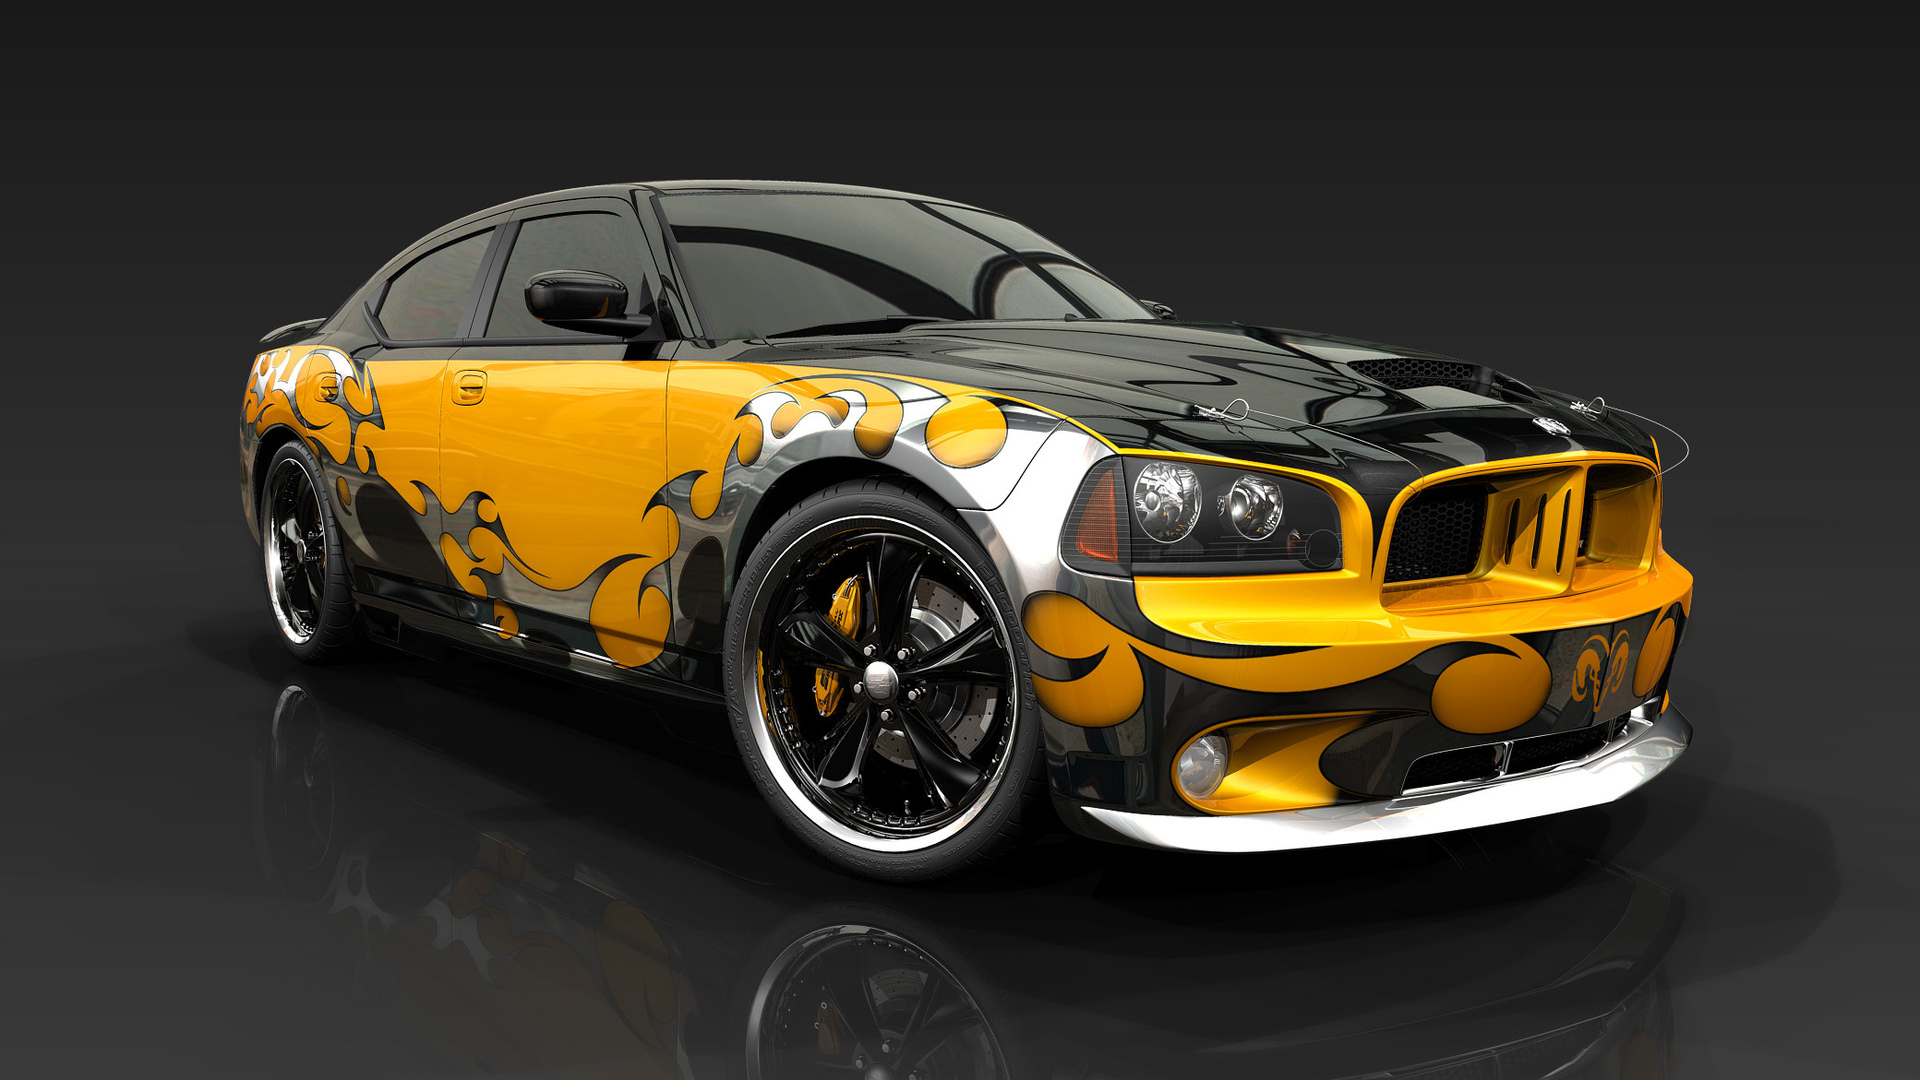 2013 Dodge Charger tuning muscle cars design graphic